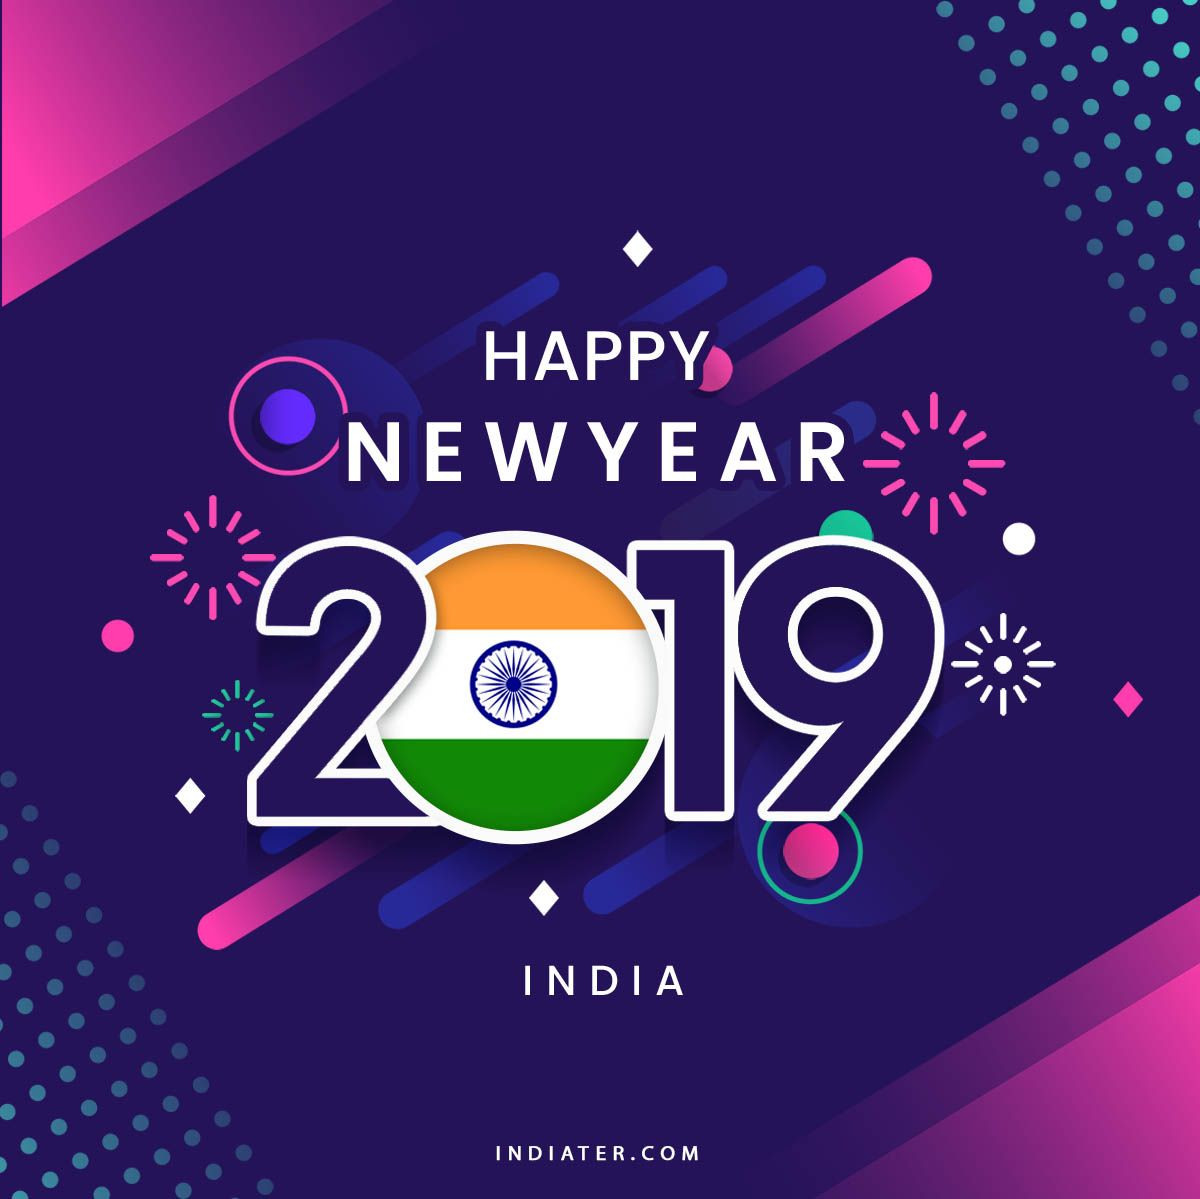 Happy New Year 2019 Wishes Greeting With Indian Flag Happy New Year 2019 Happy New Year Wishes Happy New Year Design